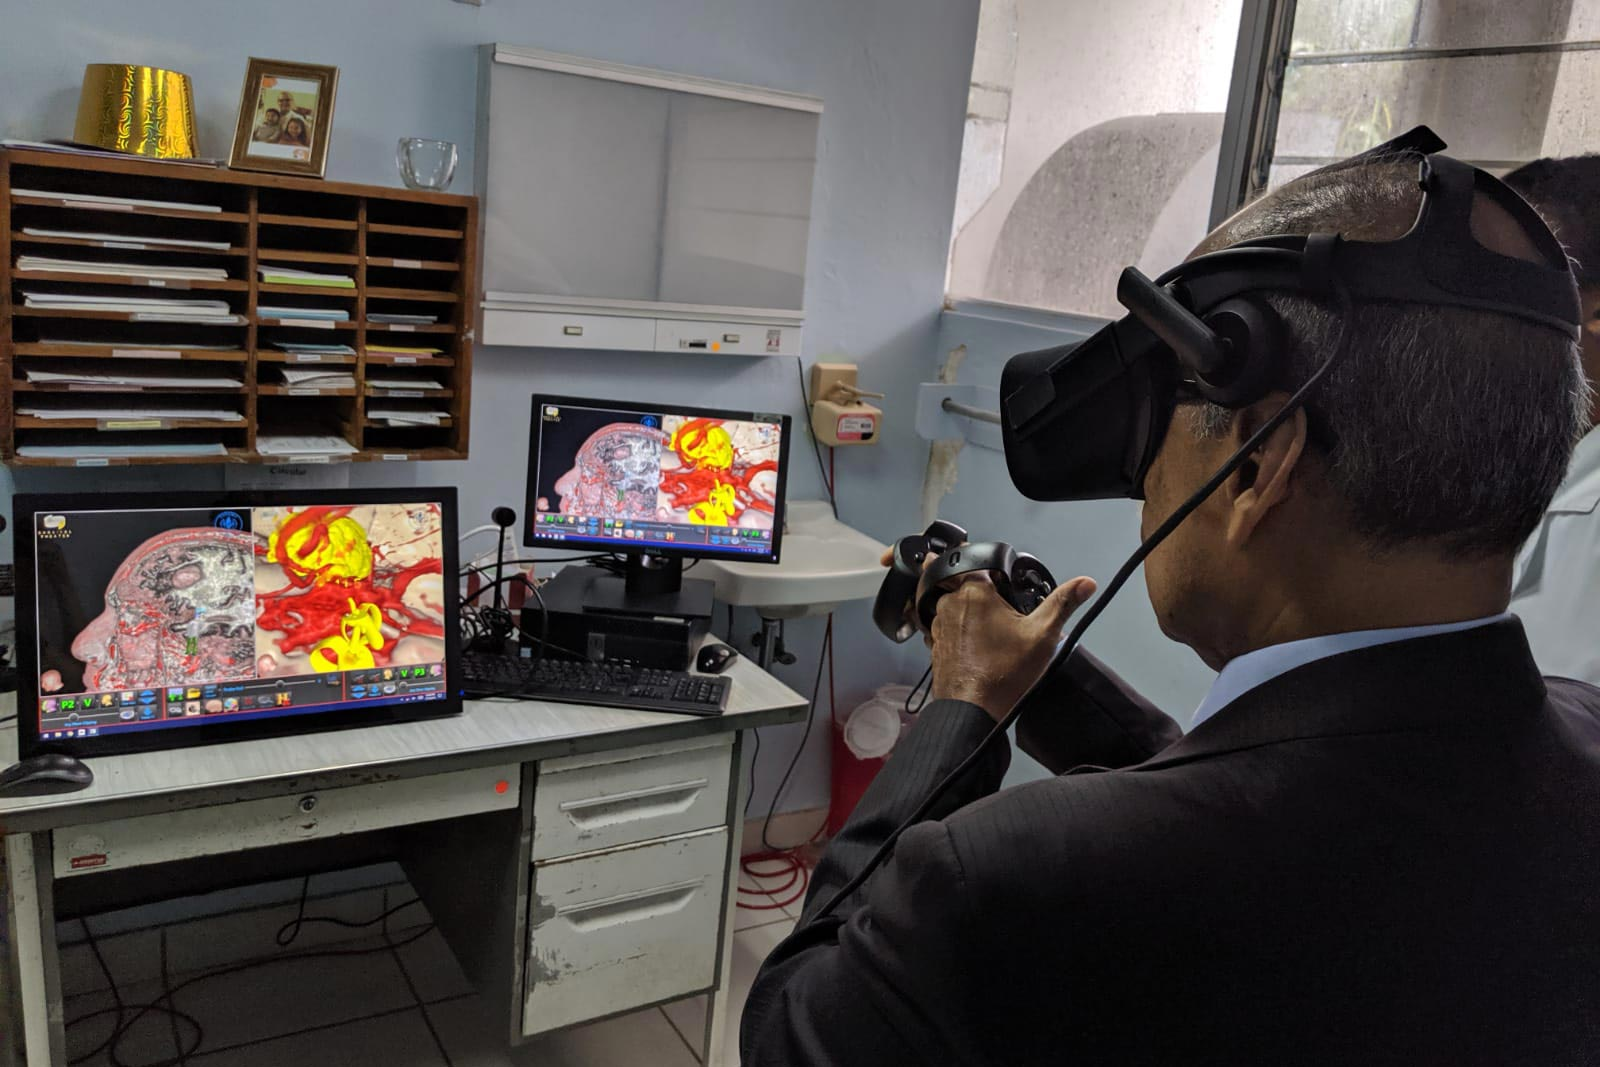 Virtual reality technology allows trainees to access MRI scans, practice surgeries and review cranial anatomy.